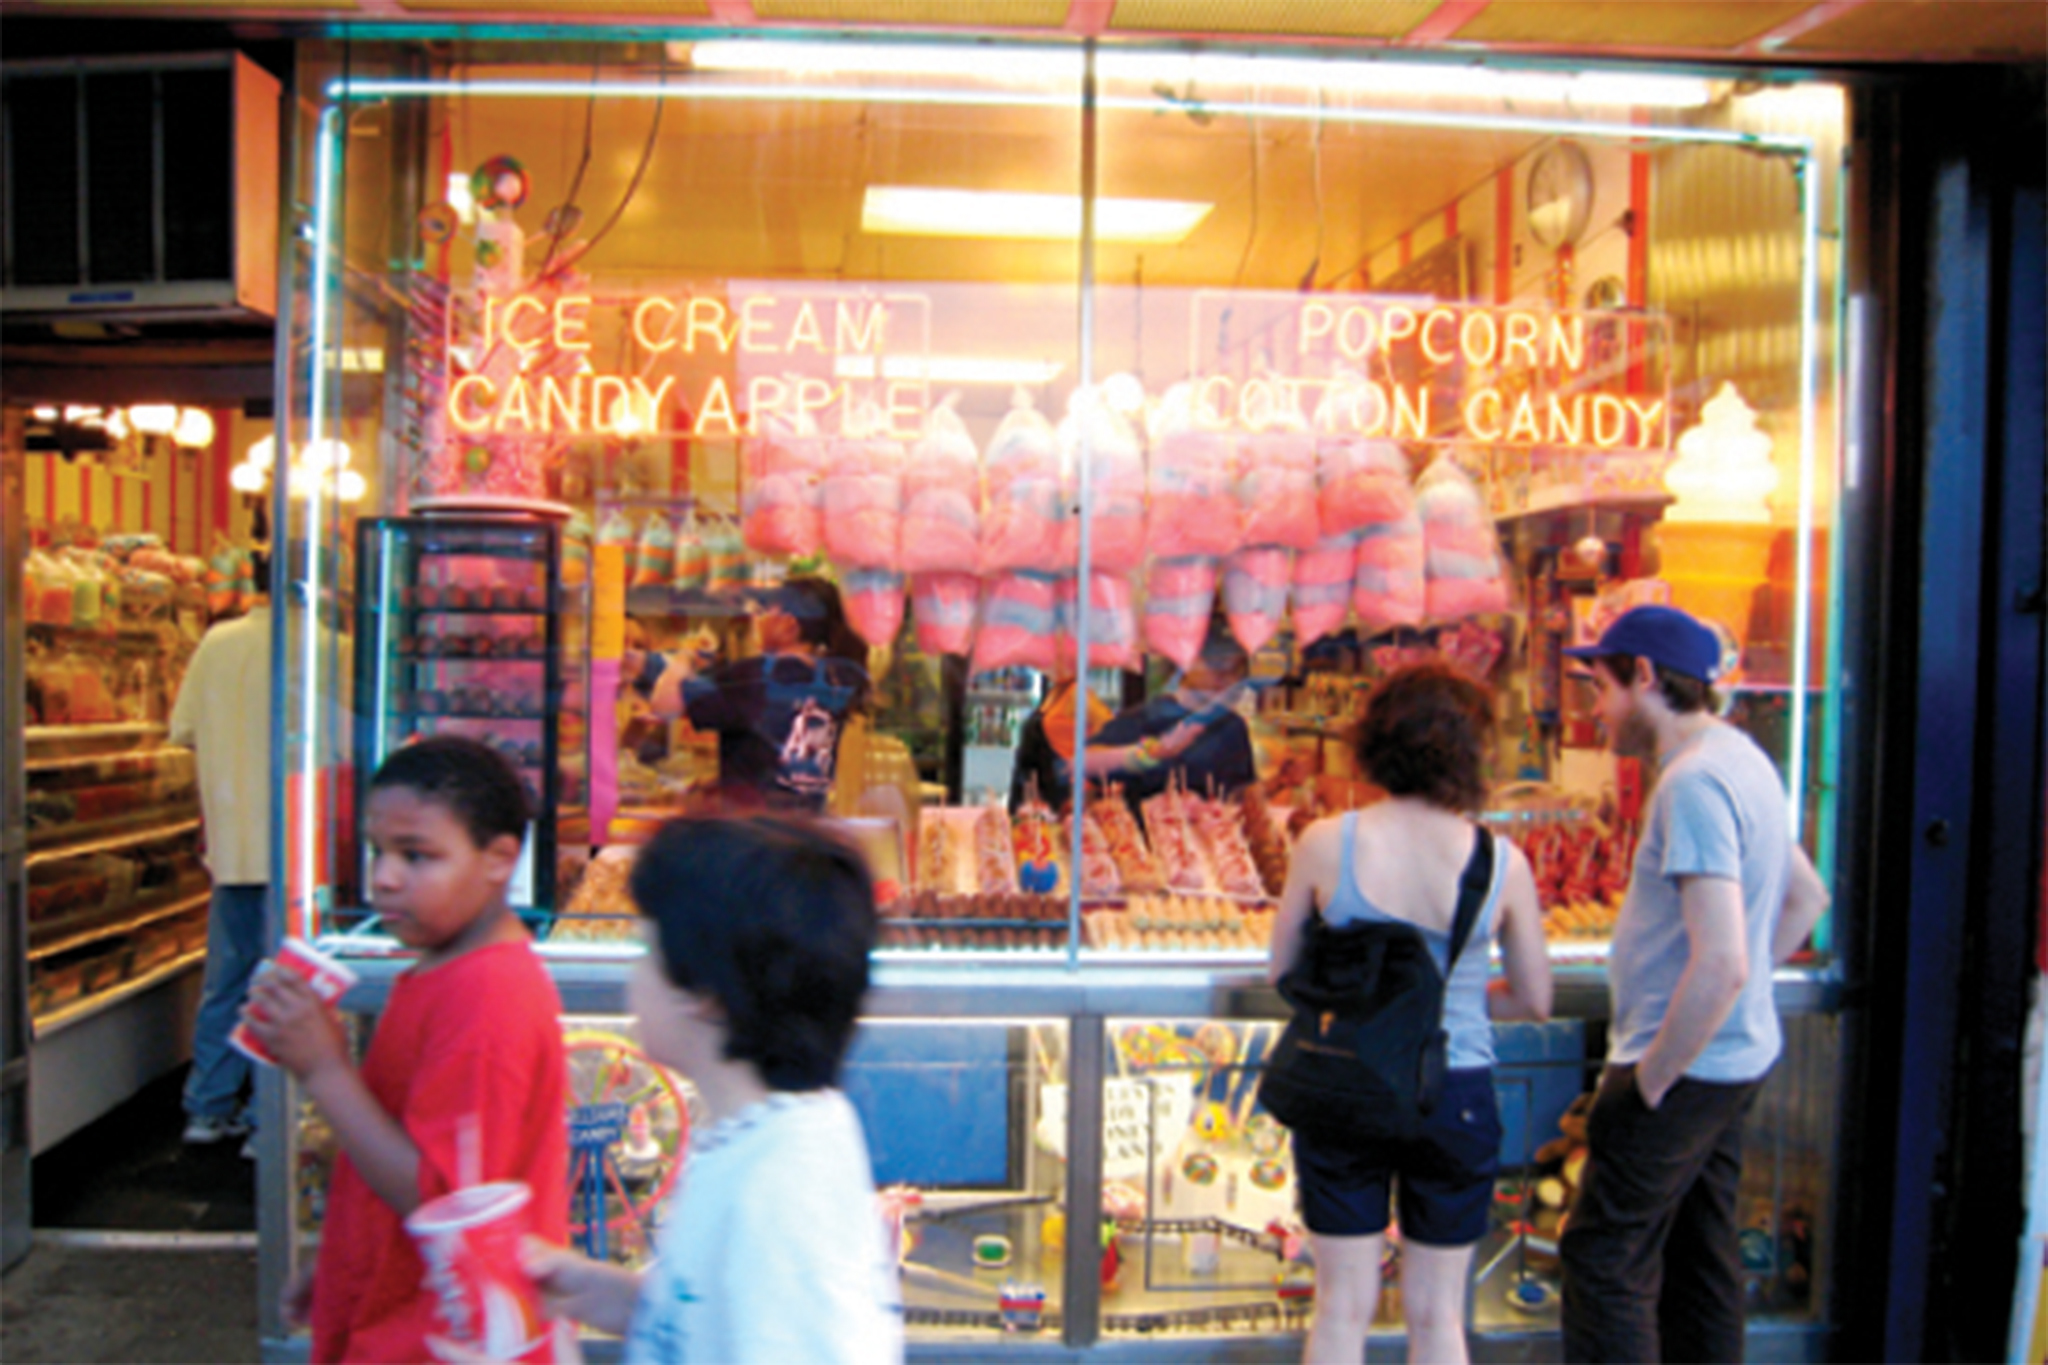 Candy stores for kids in NYC